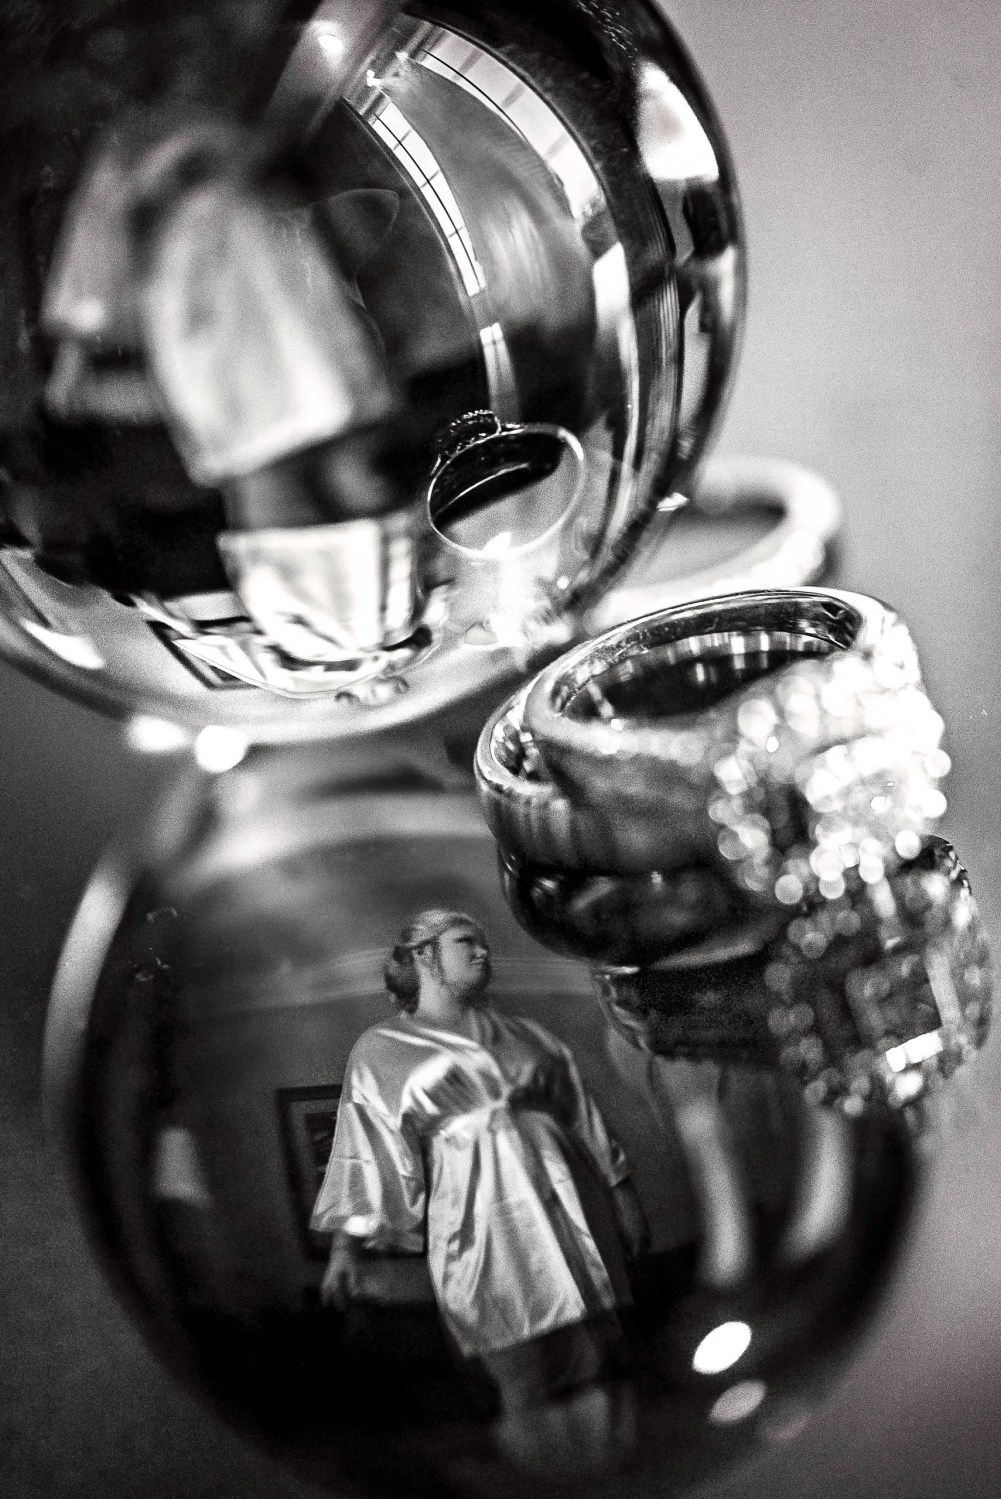 unique creative wedding photography showing bride and rings black and white